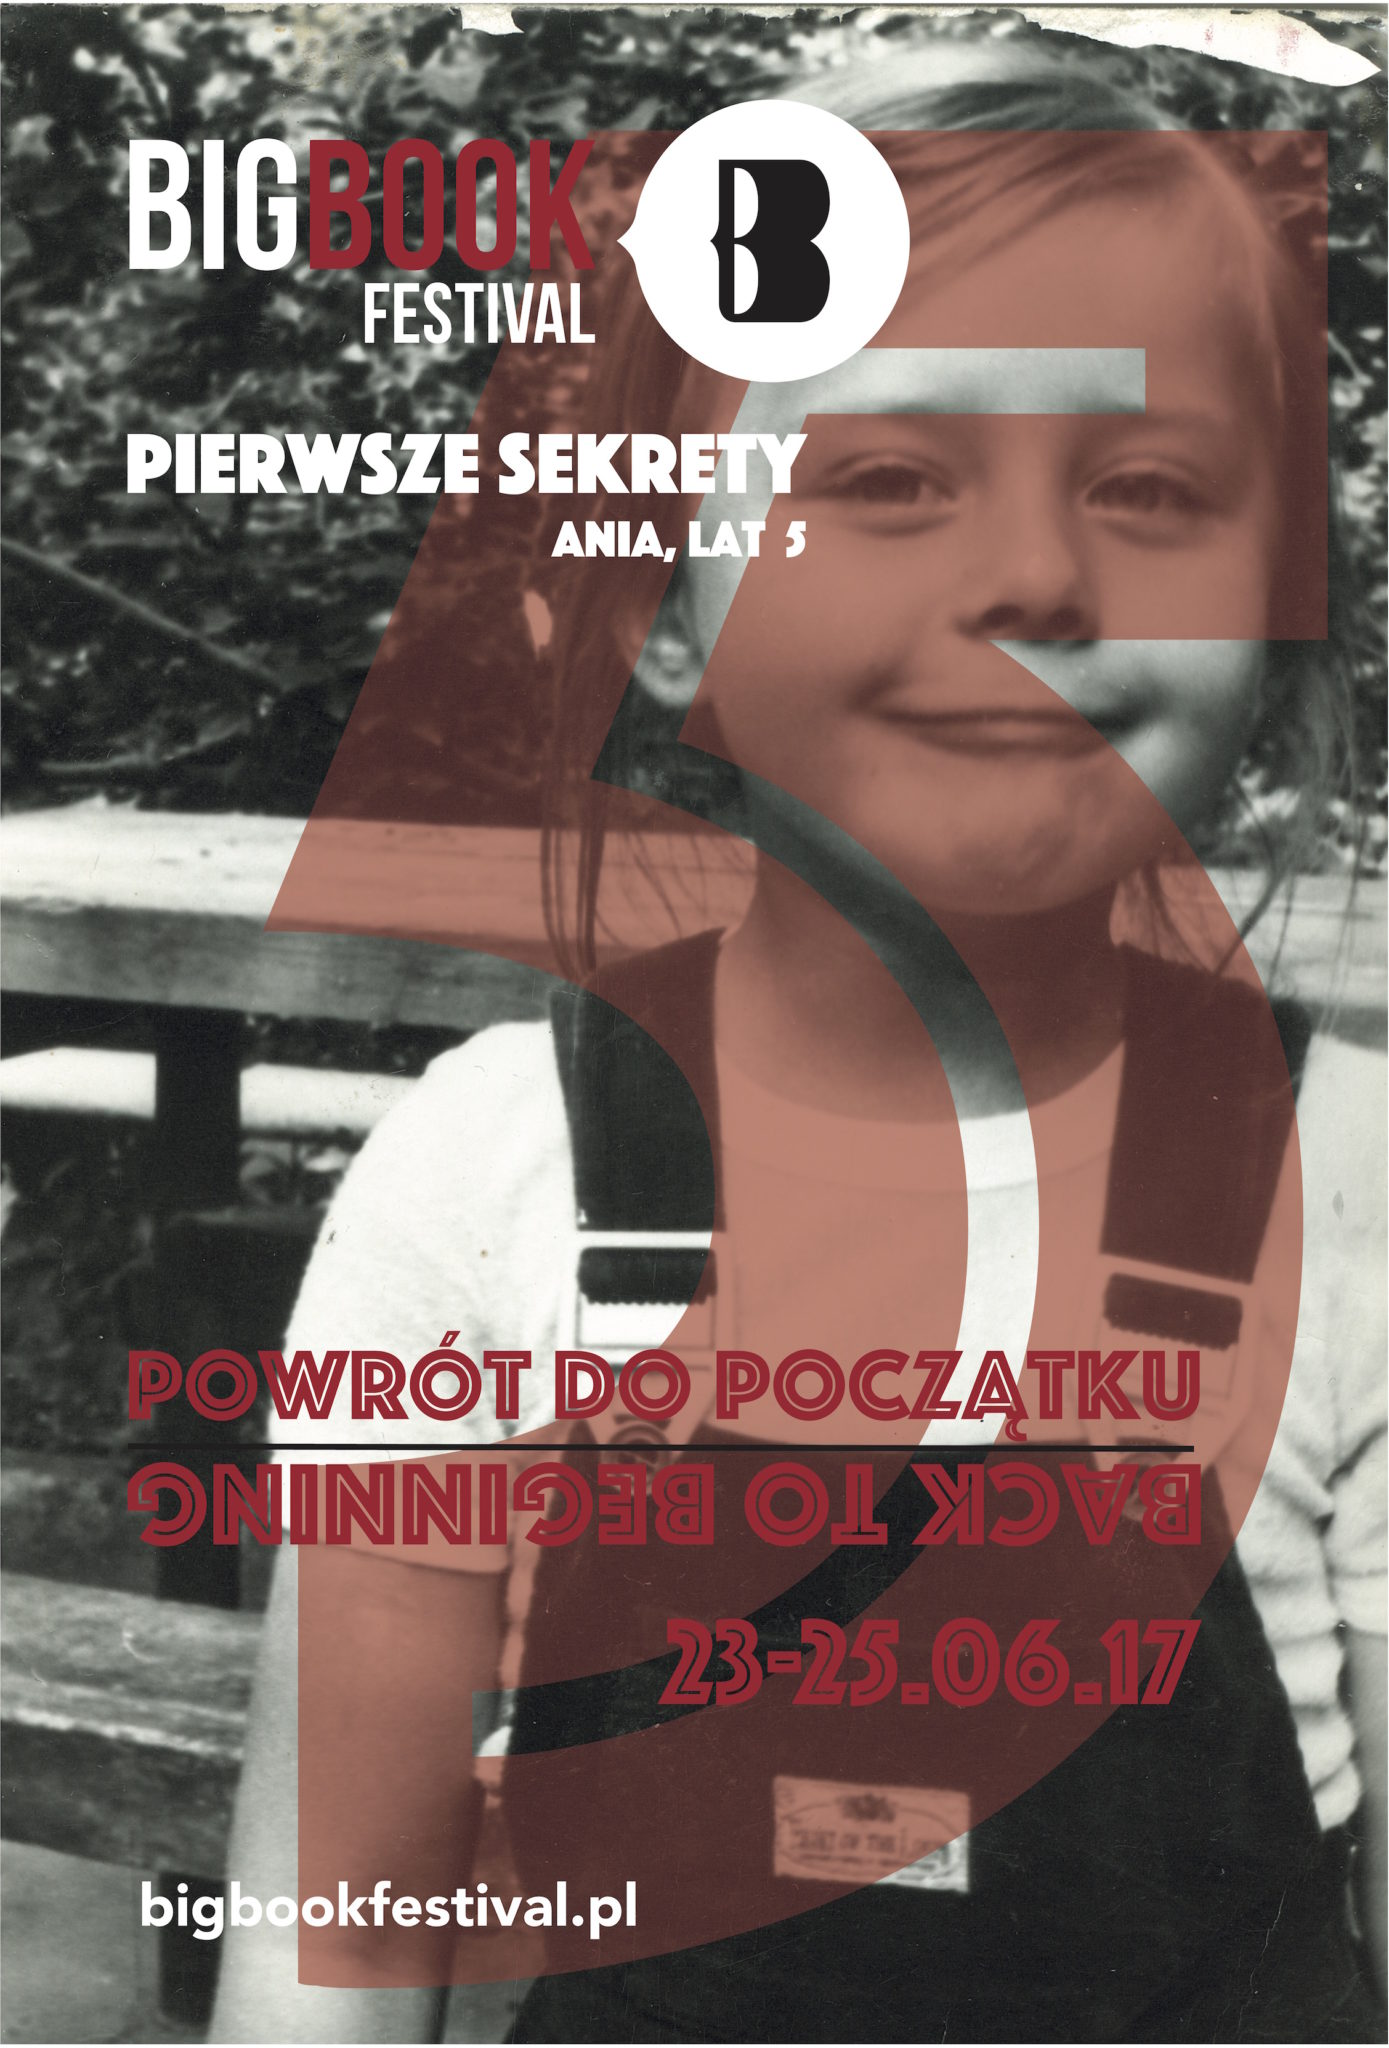 Plakat promująacy Big Book Festival